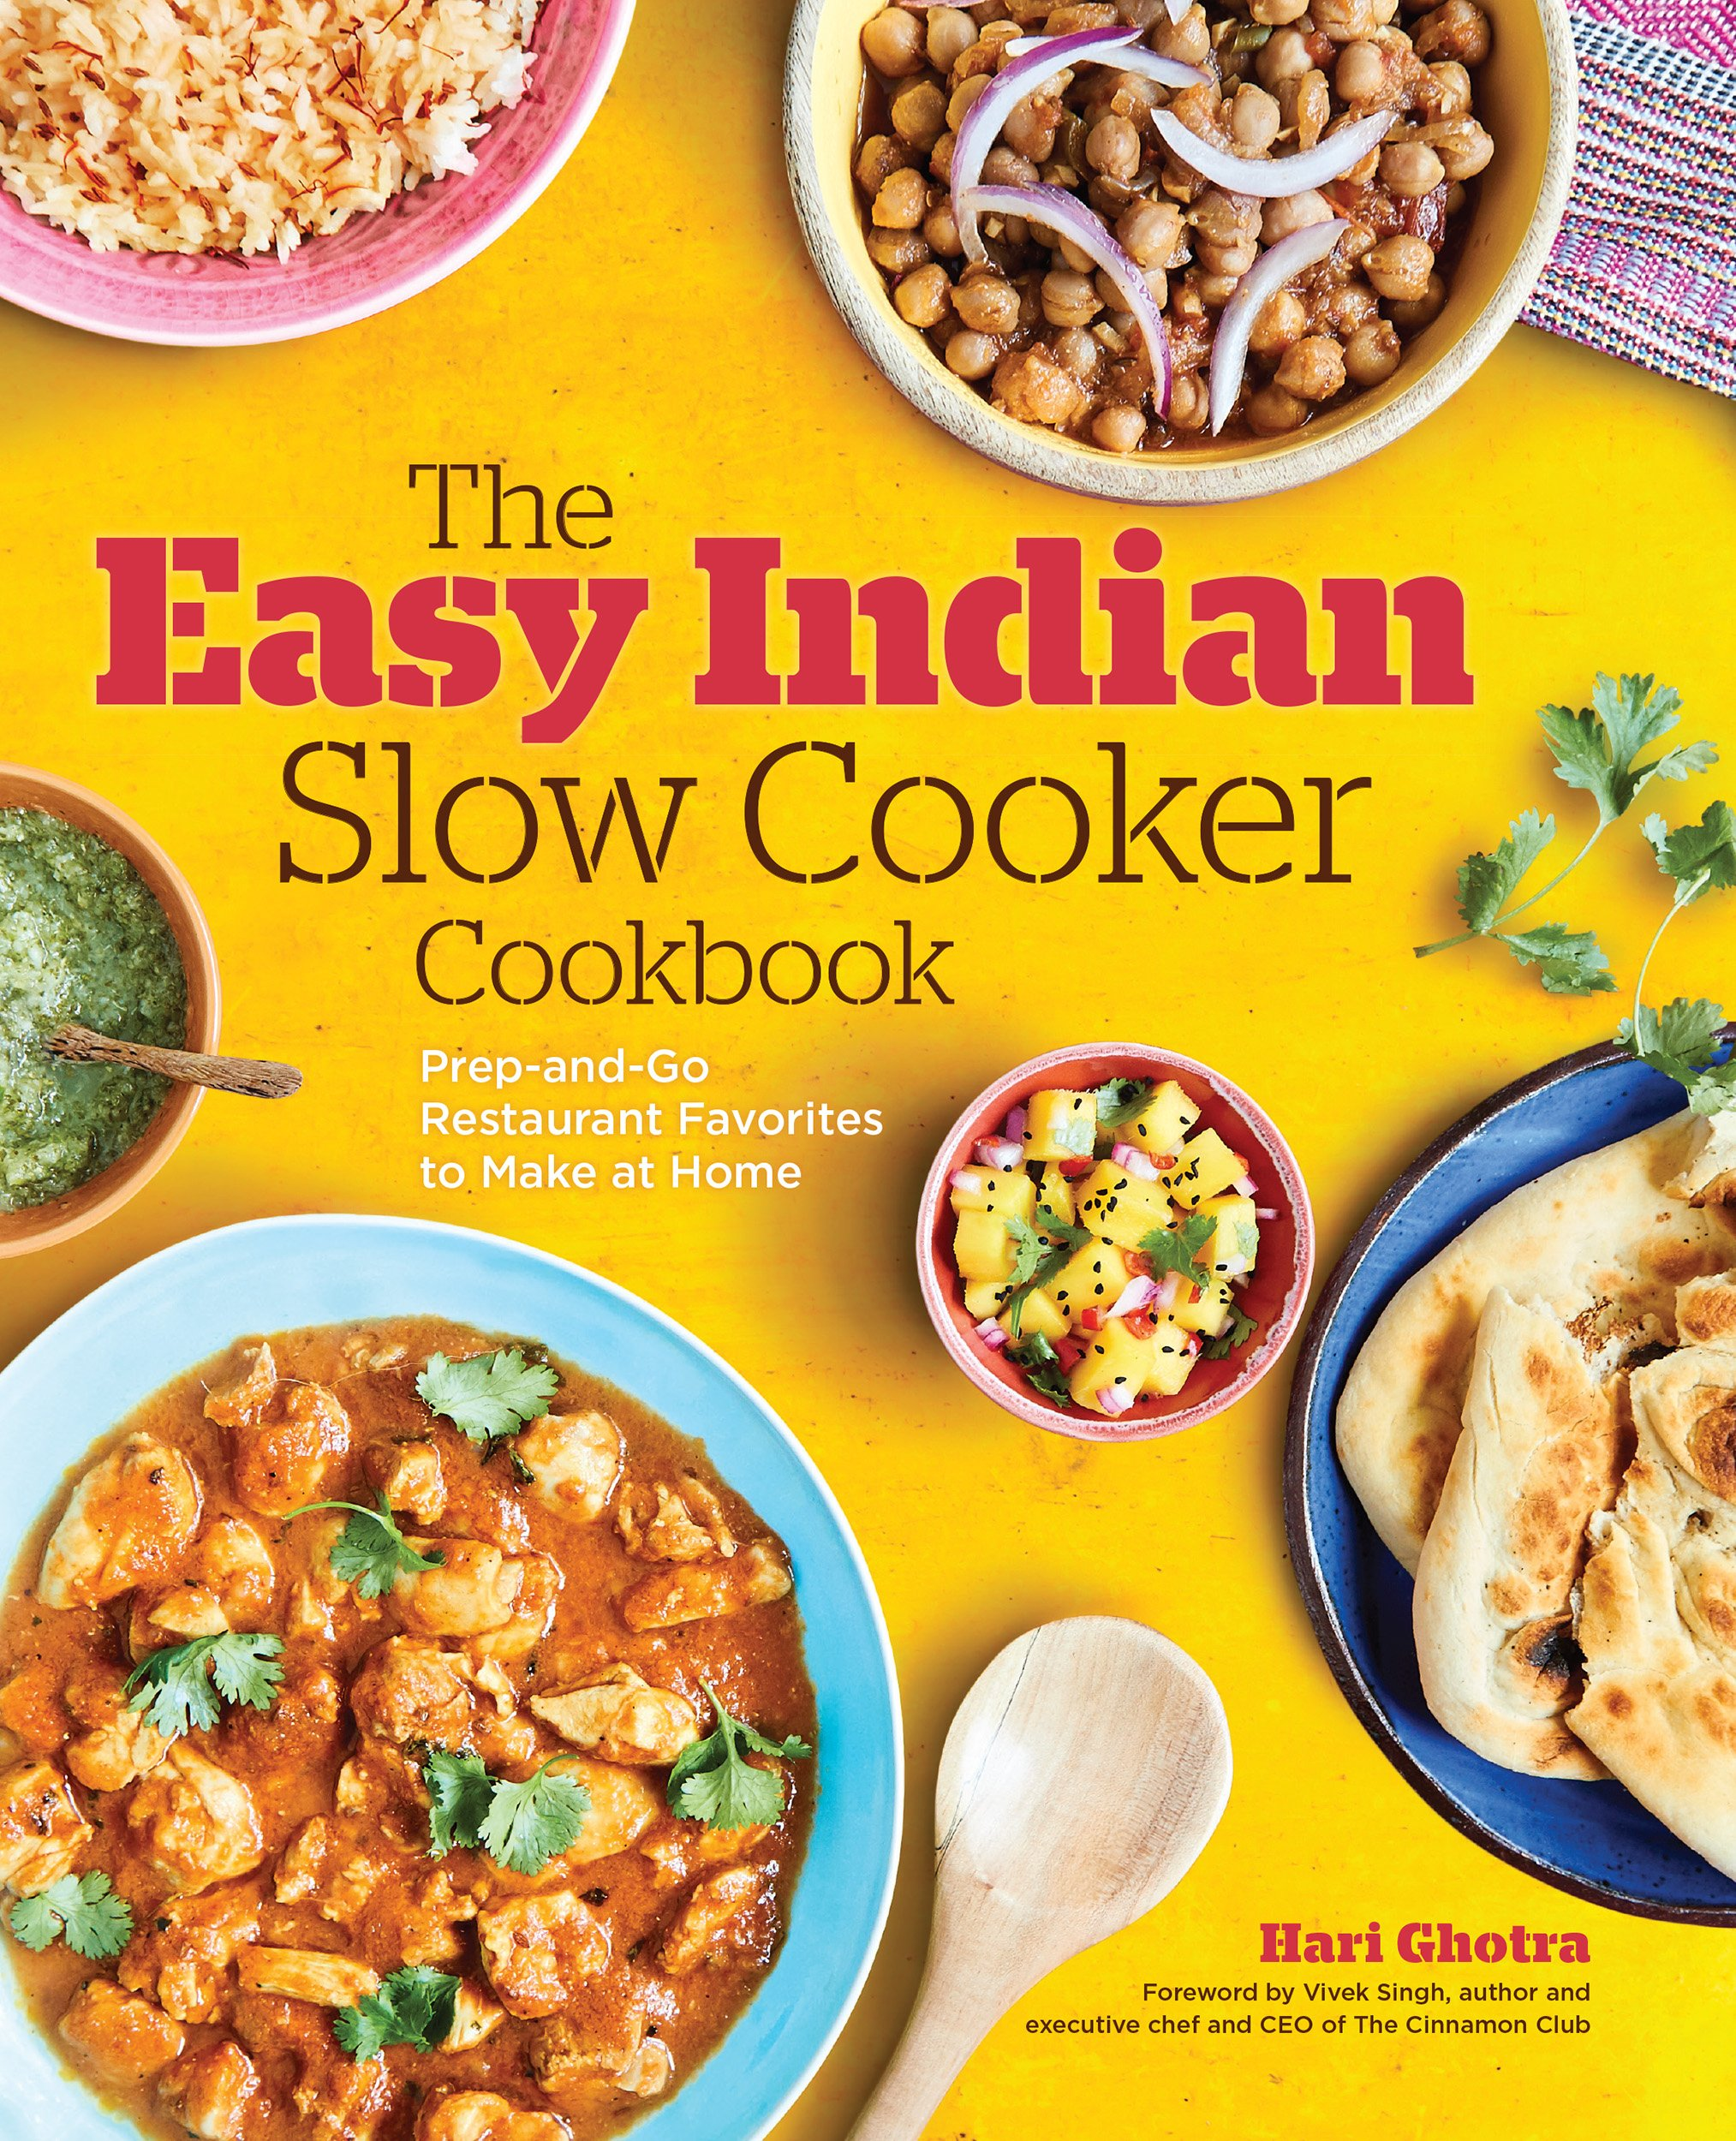 The Easy Indian Slow Cooker Cookbook: Prep-and-Go Restaurant Favorites to Make at Home 1